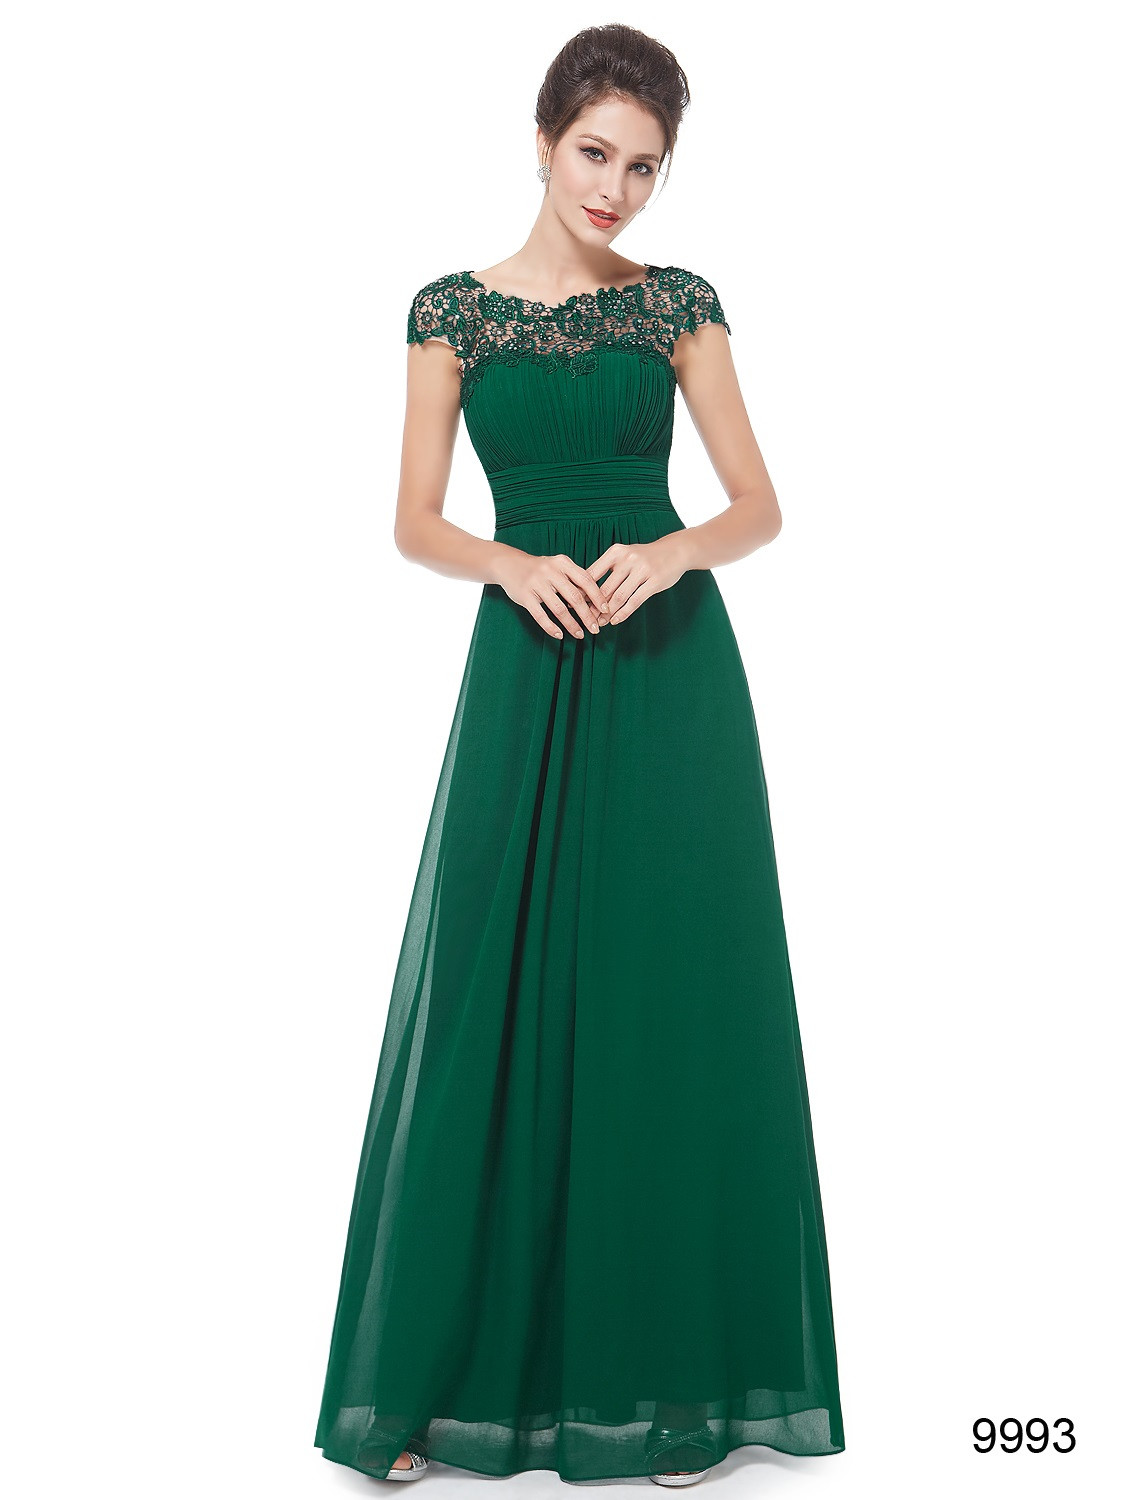 Top Lace Green Lacey Bridesmaid Dress